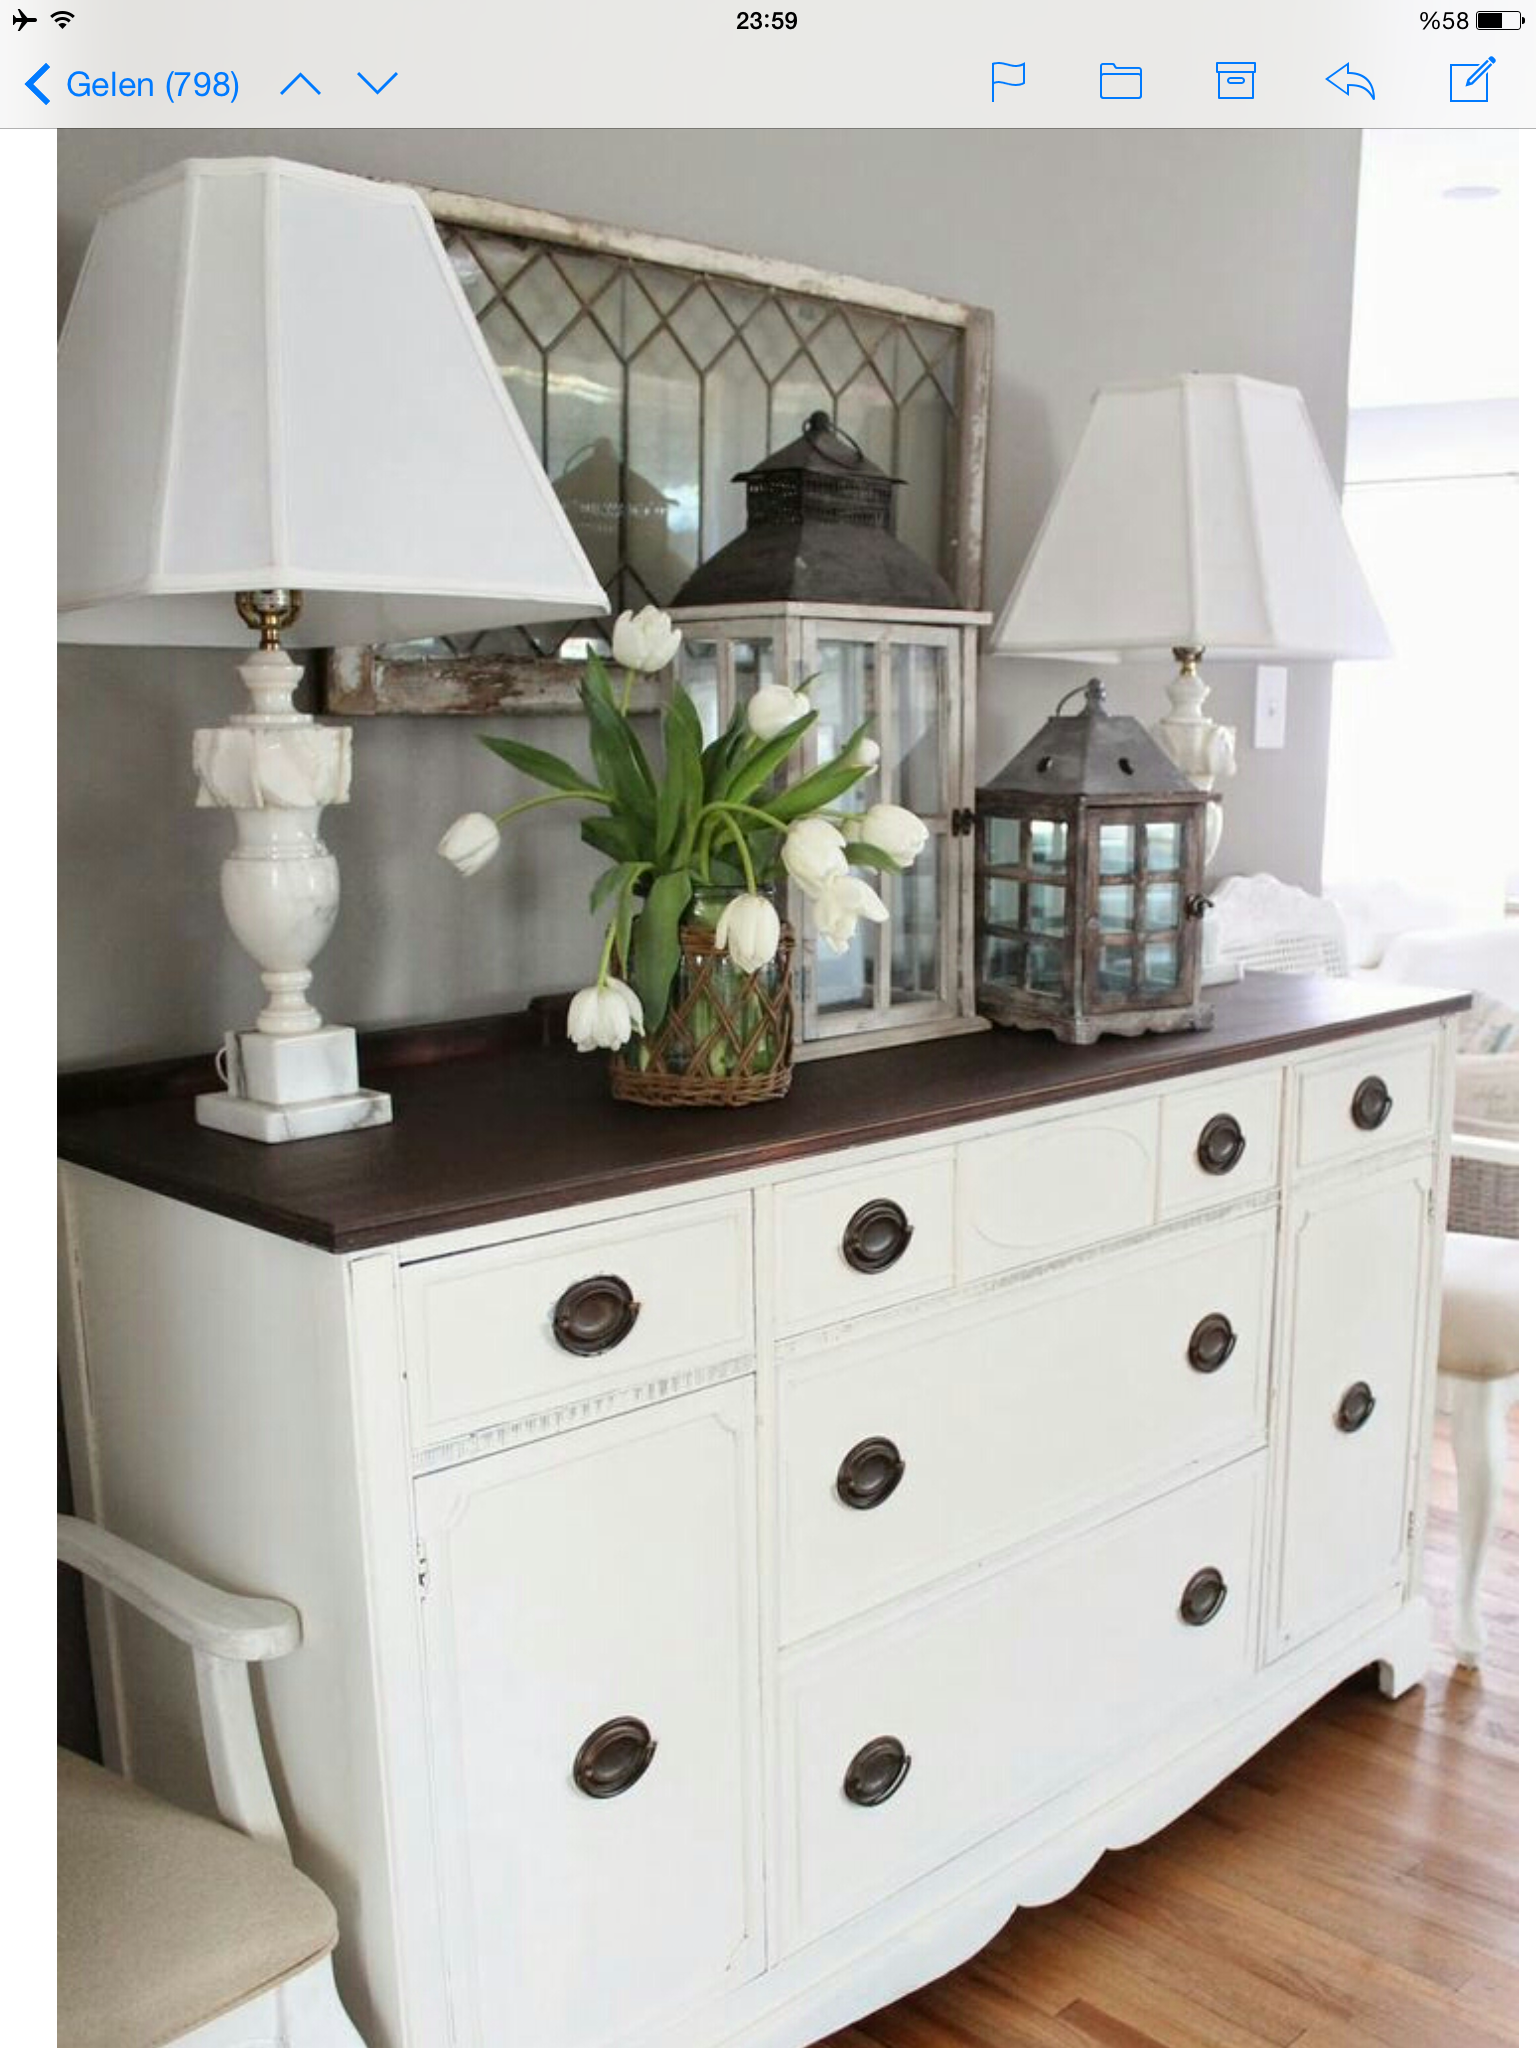 Find Used Dresser U0026 Chest Of Drawers, Paint Body U0026 Drawers White, Java Gel